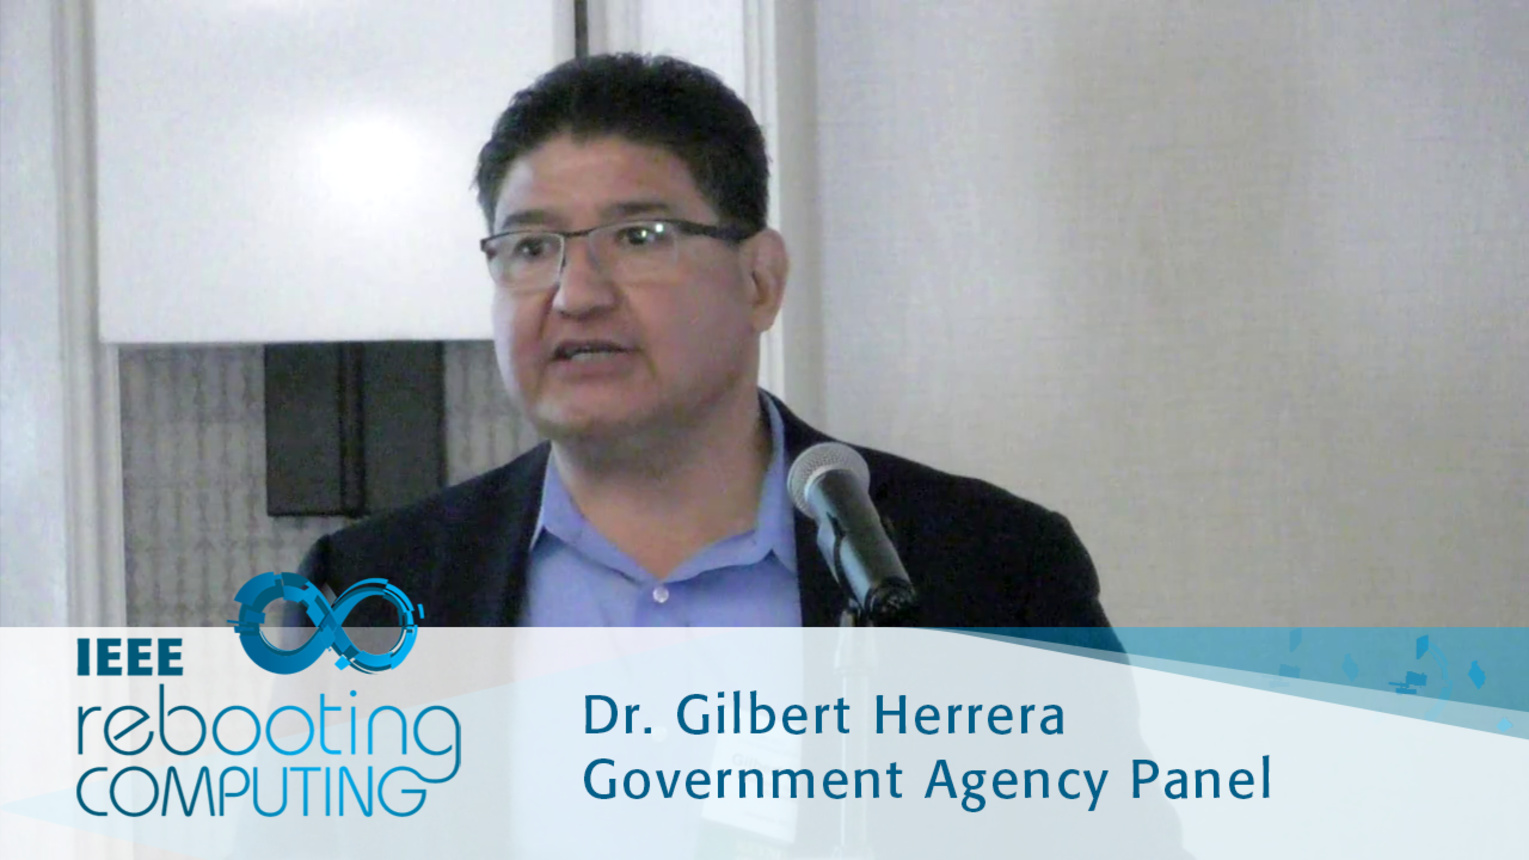 Rebooting Computing Research at the Laboratory for Physical Sciences - Gil Herrera: 2016 International Conference on Rebooting Computing